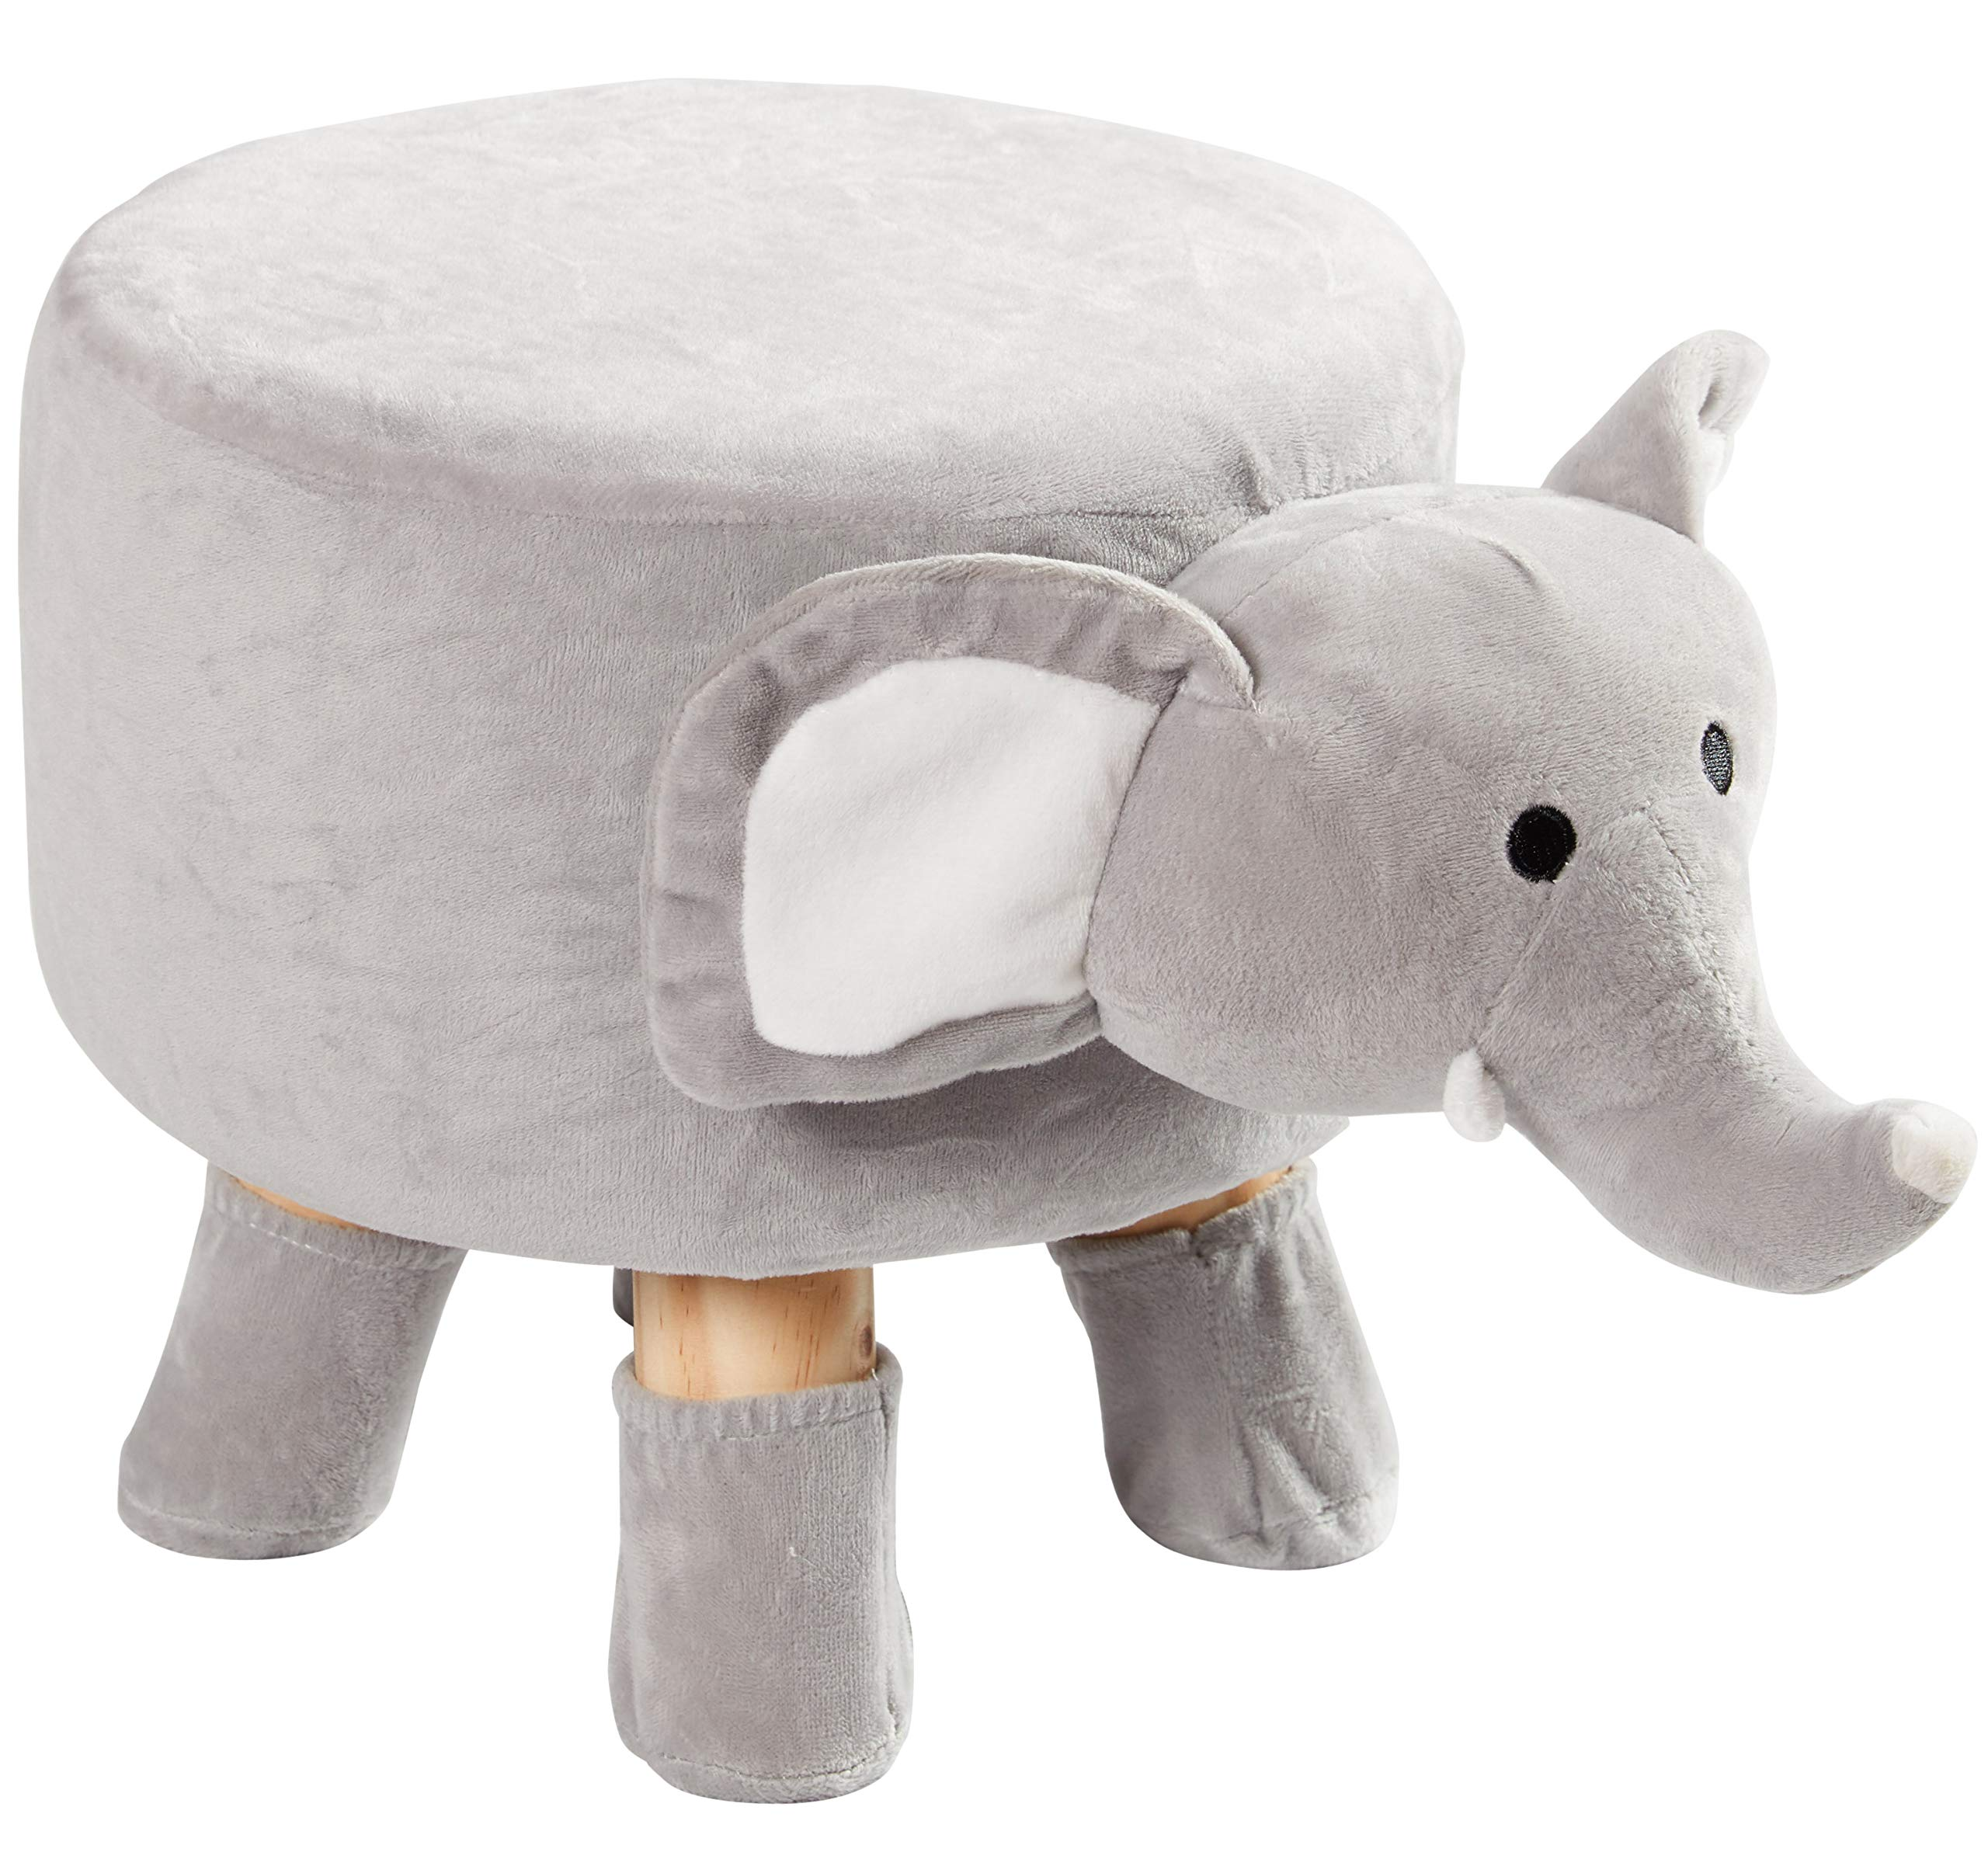 Cheer Collection Kids Mini Stool - Small Padded Footrest for Children and Nursery Decor (Elephant) by Cheer Collection